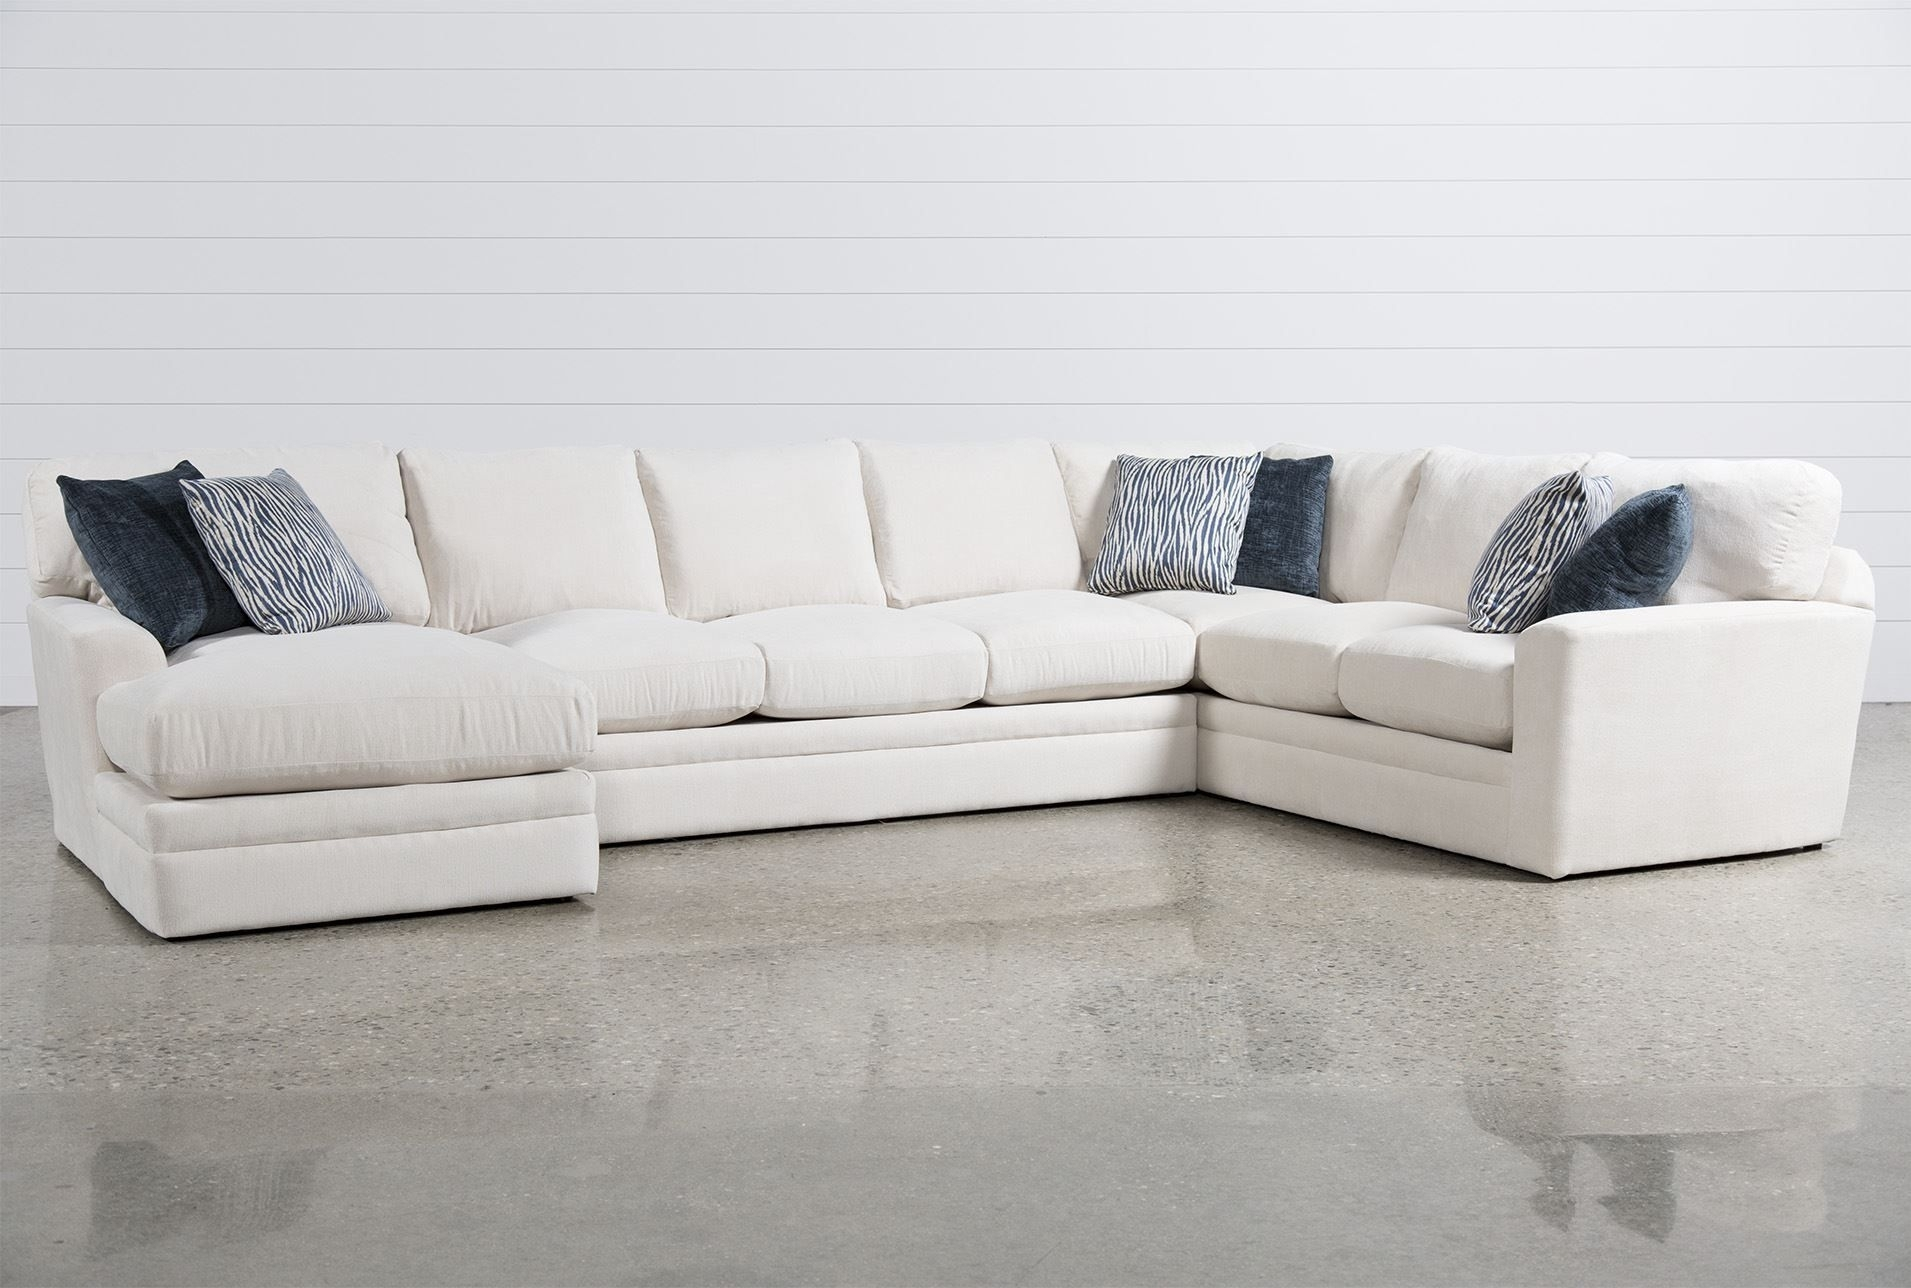 Glamour Ii 3 Piece Sectional | Furniture Options For Roland Beach Throughout Cohen Down 2 Piece Sectionals (View 6 of 25)